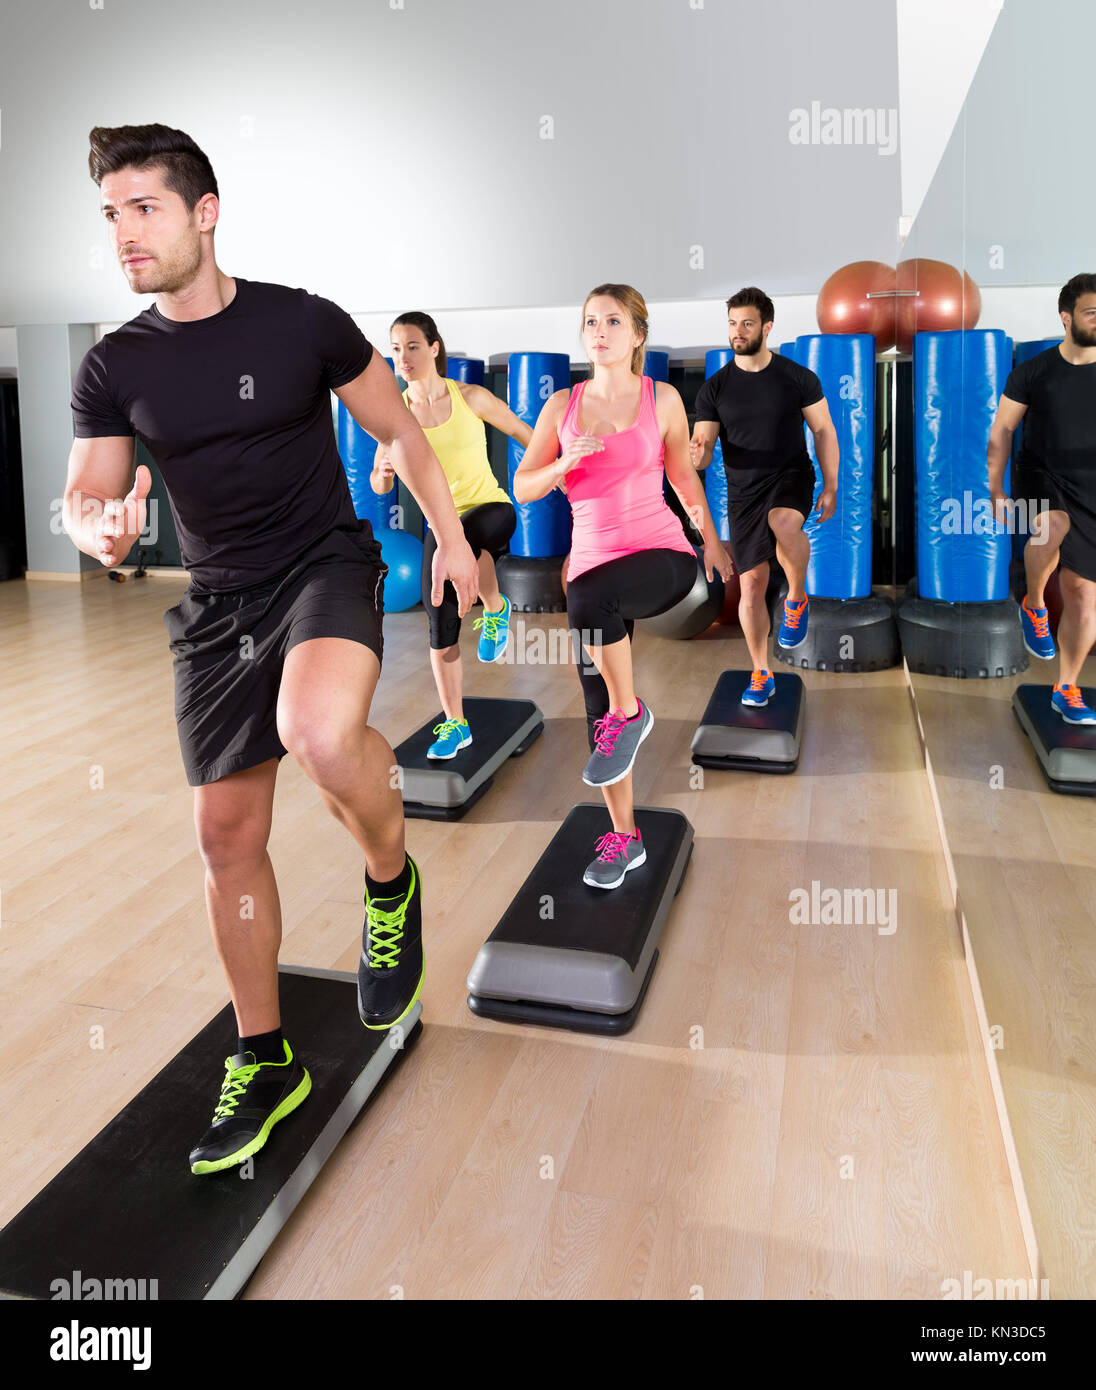 Cardio step dance people group at fitness gym training workout. - Stock Image